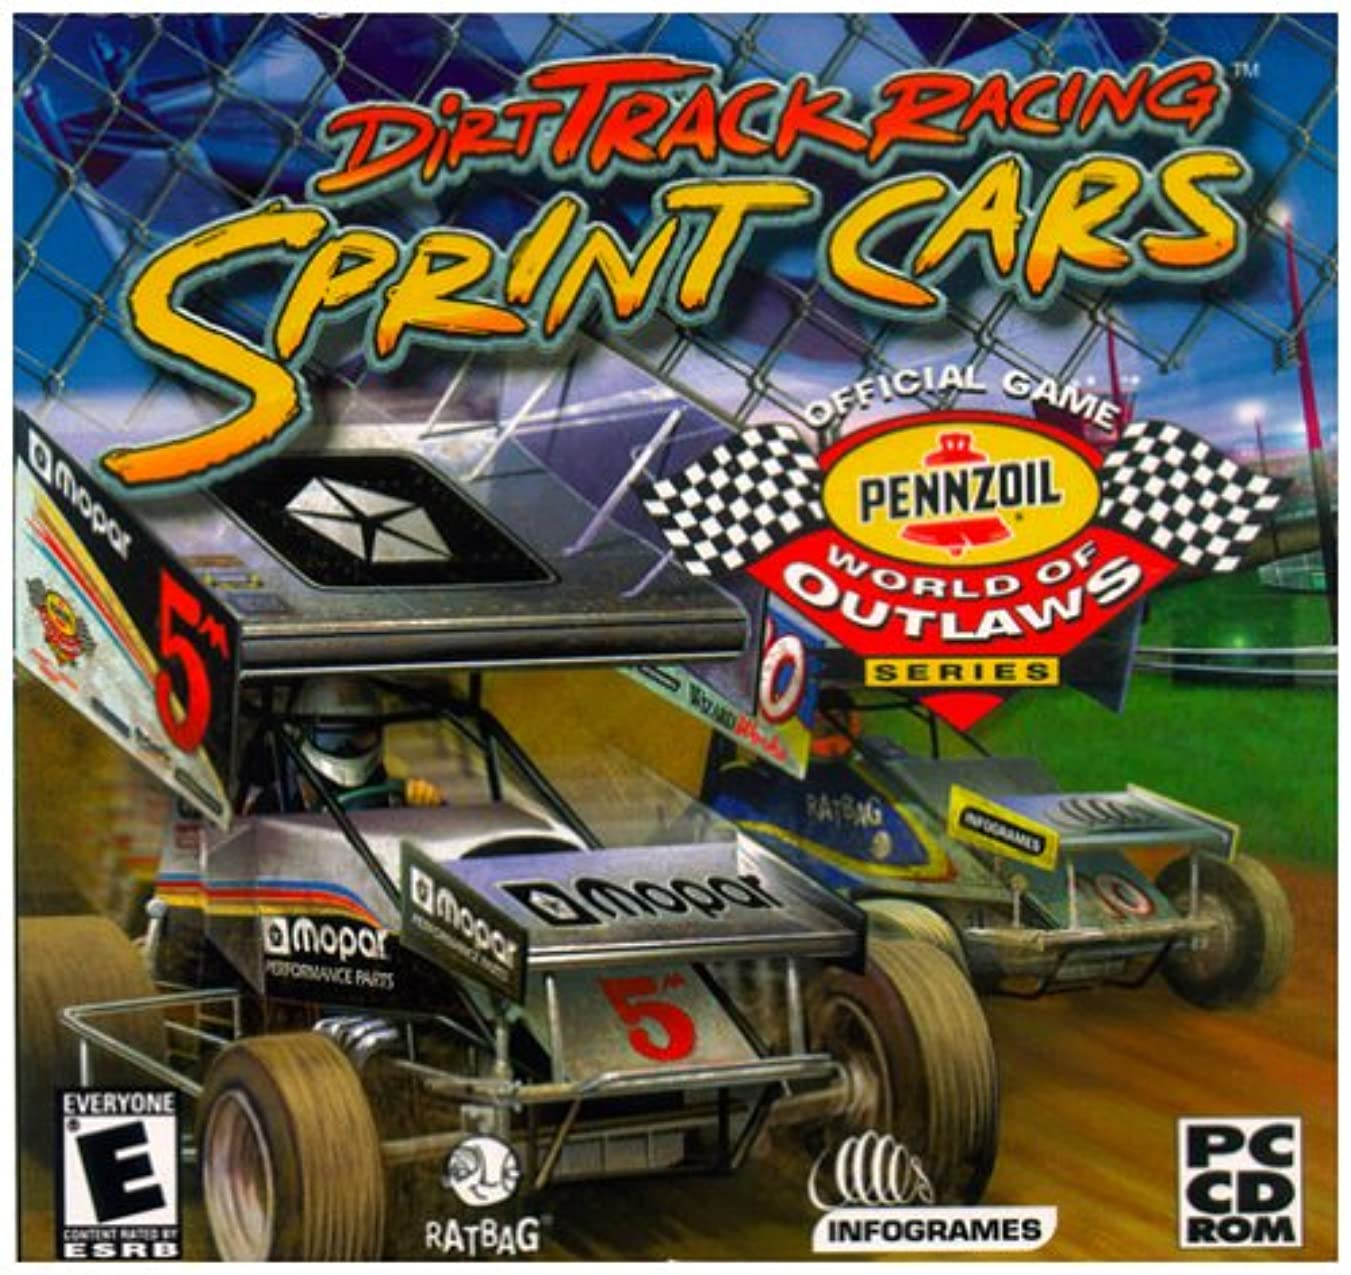 Dirt Track Sprint Cars (Jewel Case) (輸入版)